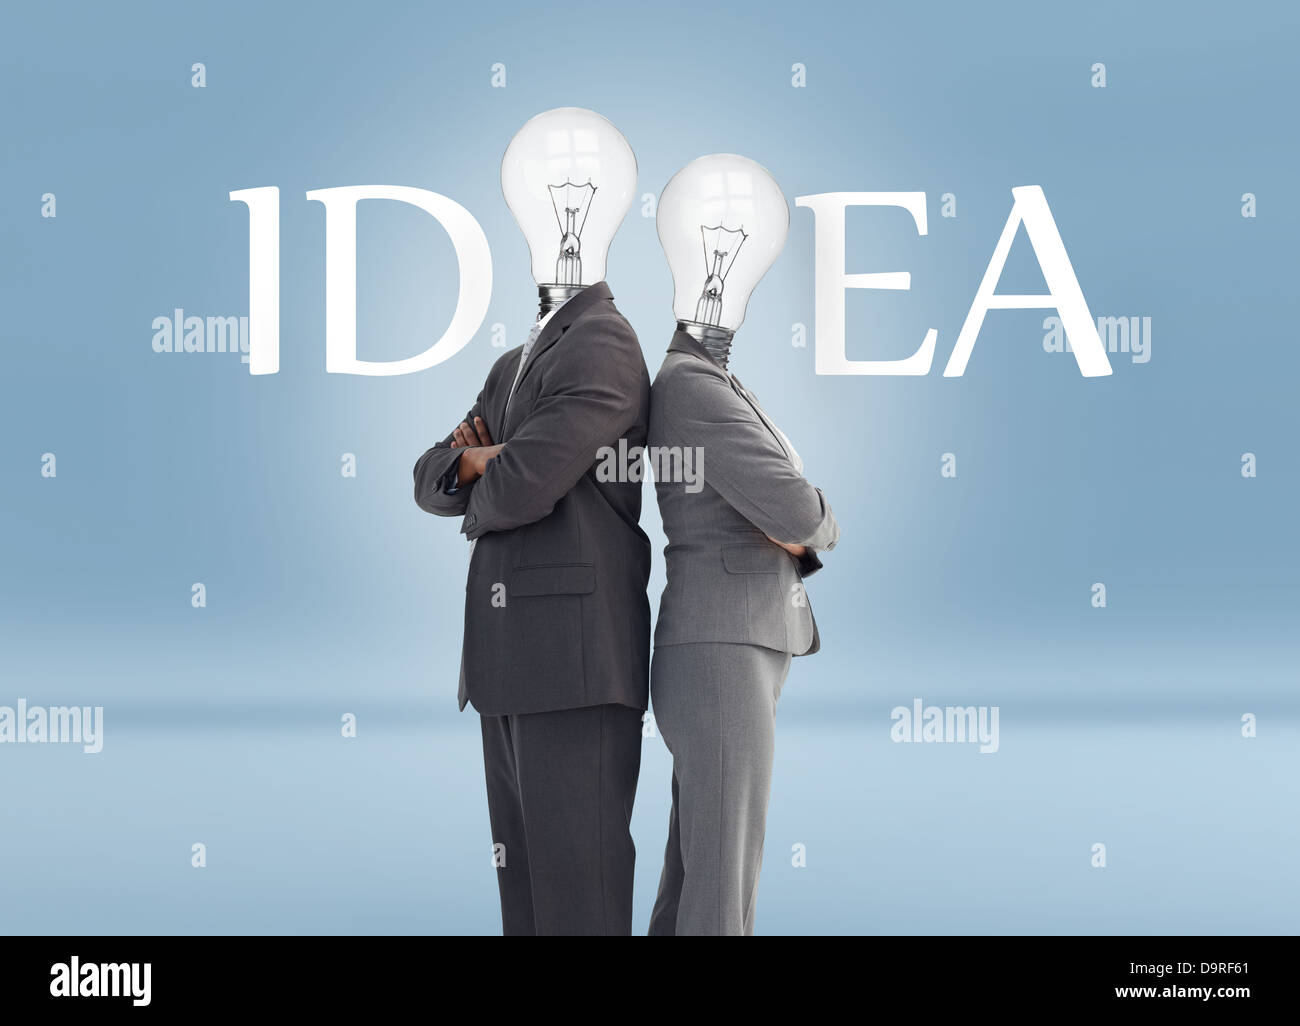 Business people with light bulb heads and idea text - Stock Image